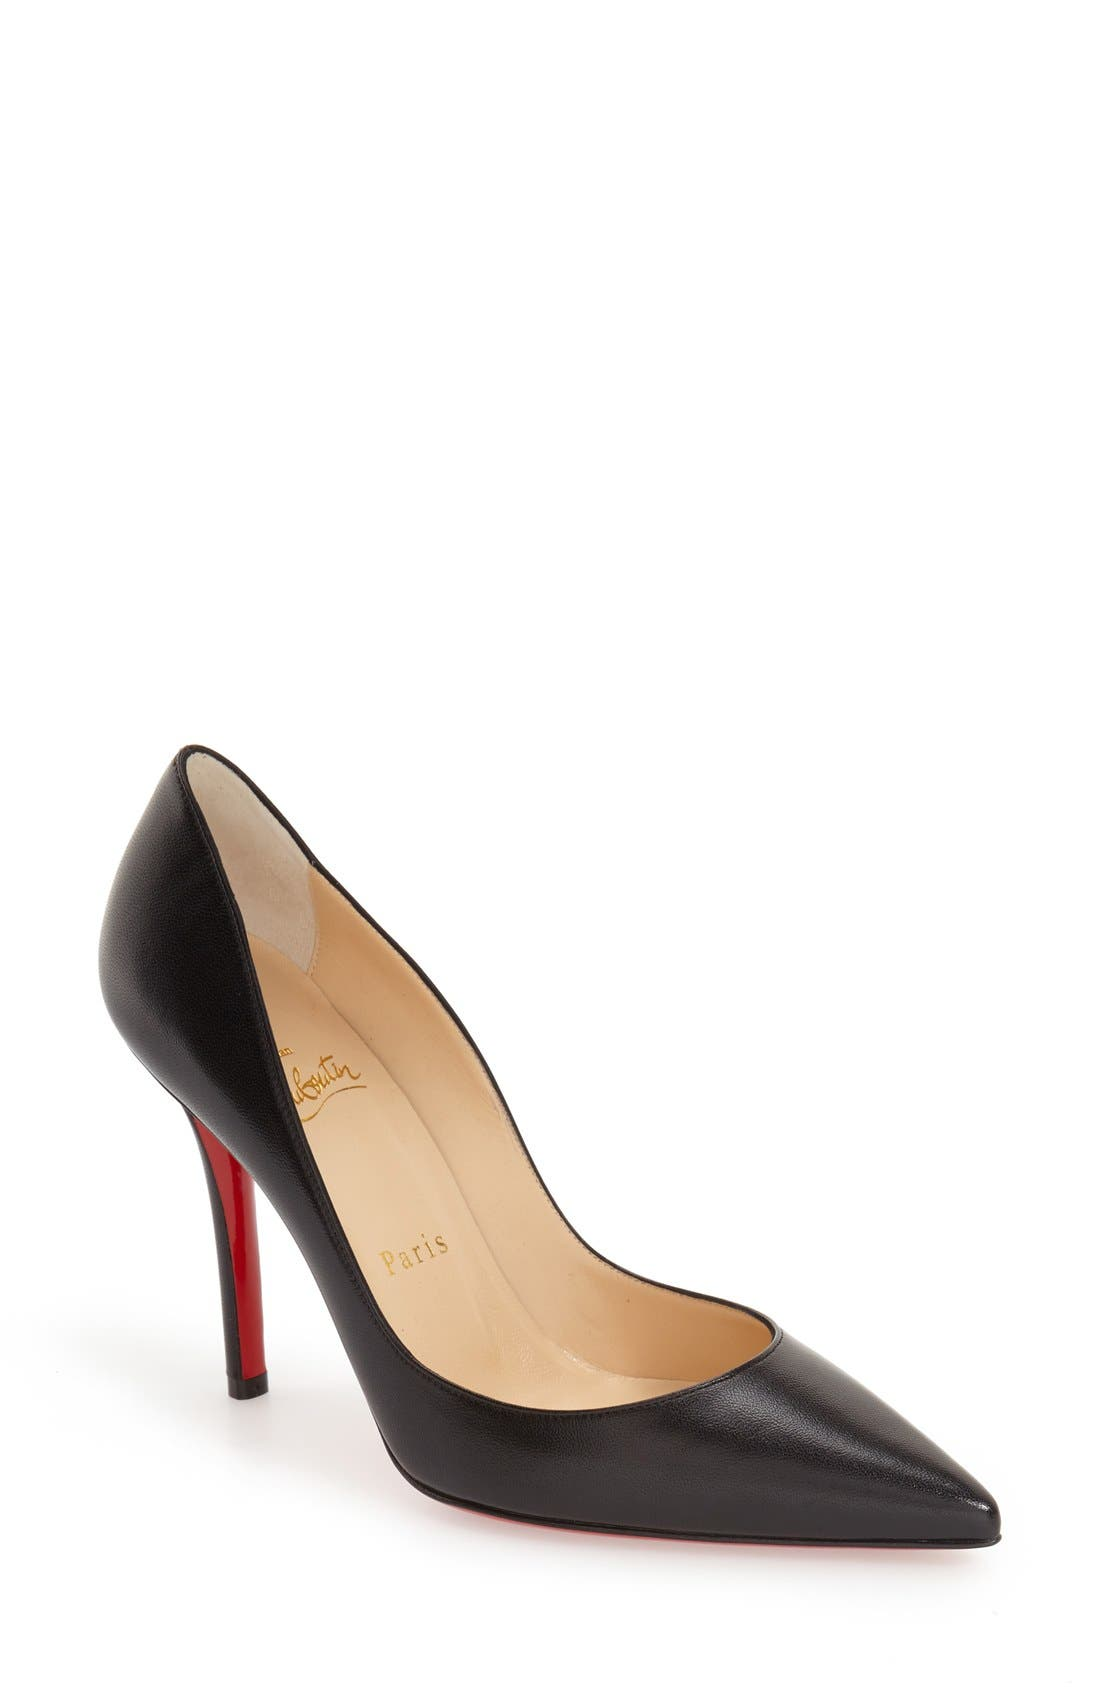 'Apostrophy' Pointy Toe Pump,                             Main thumbnail 1, color,                             Black Leather